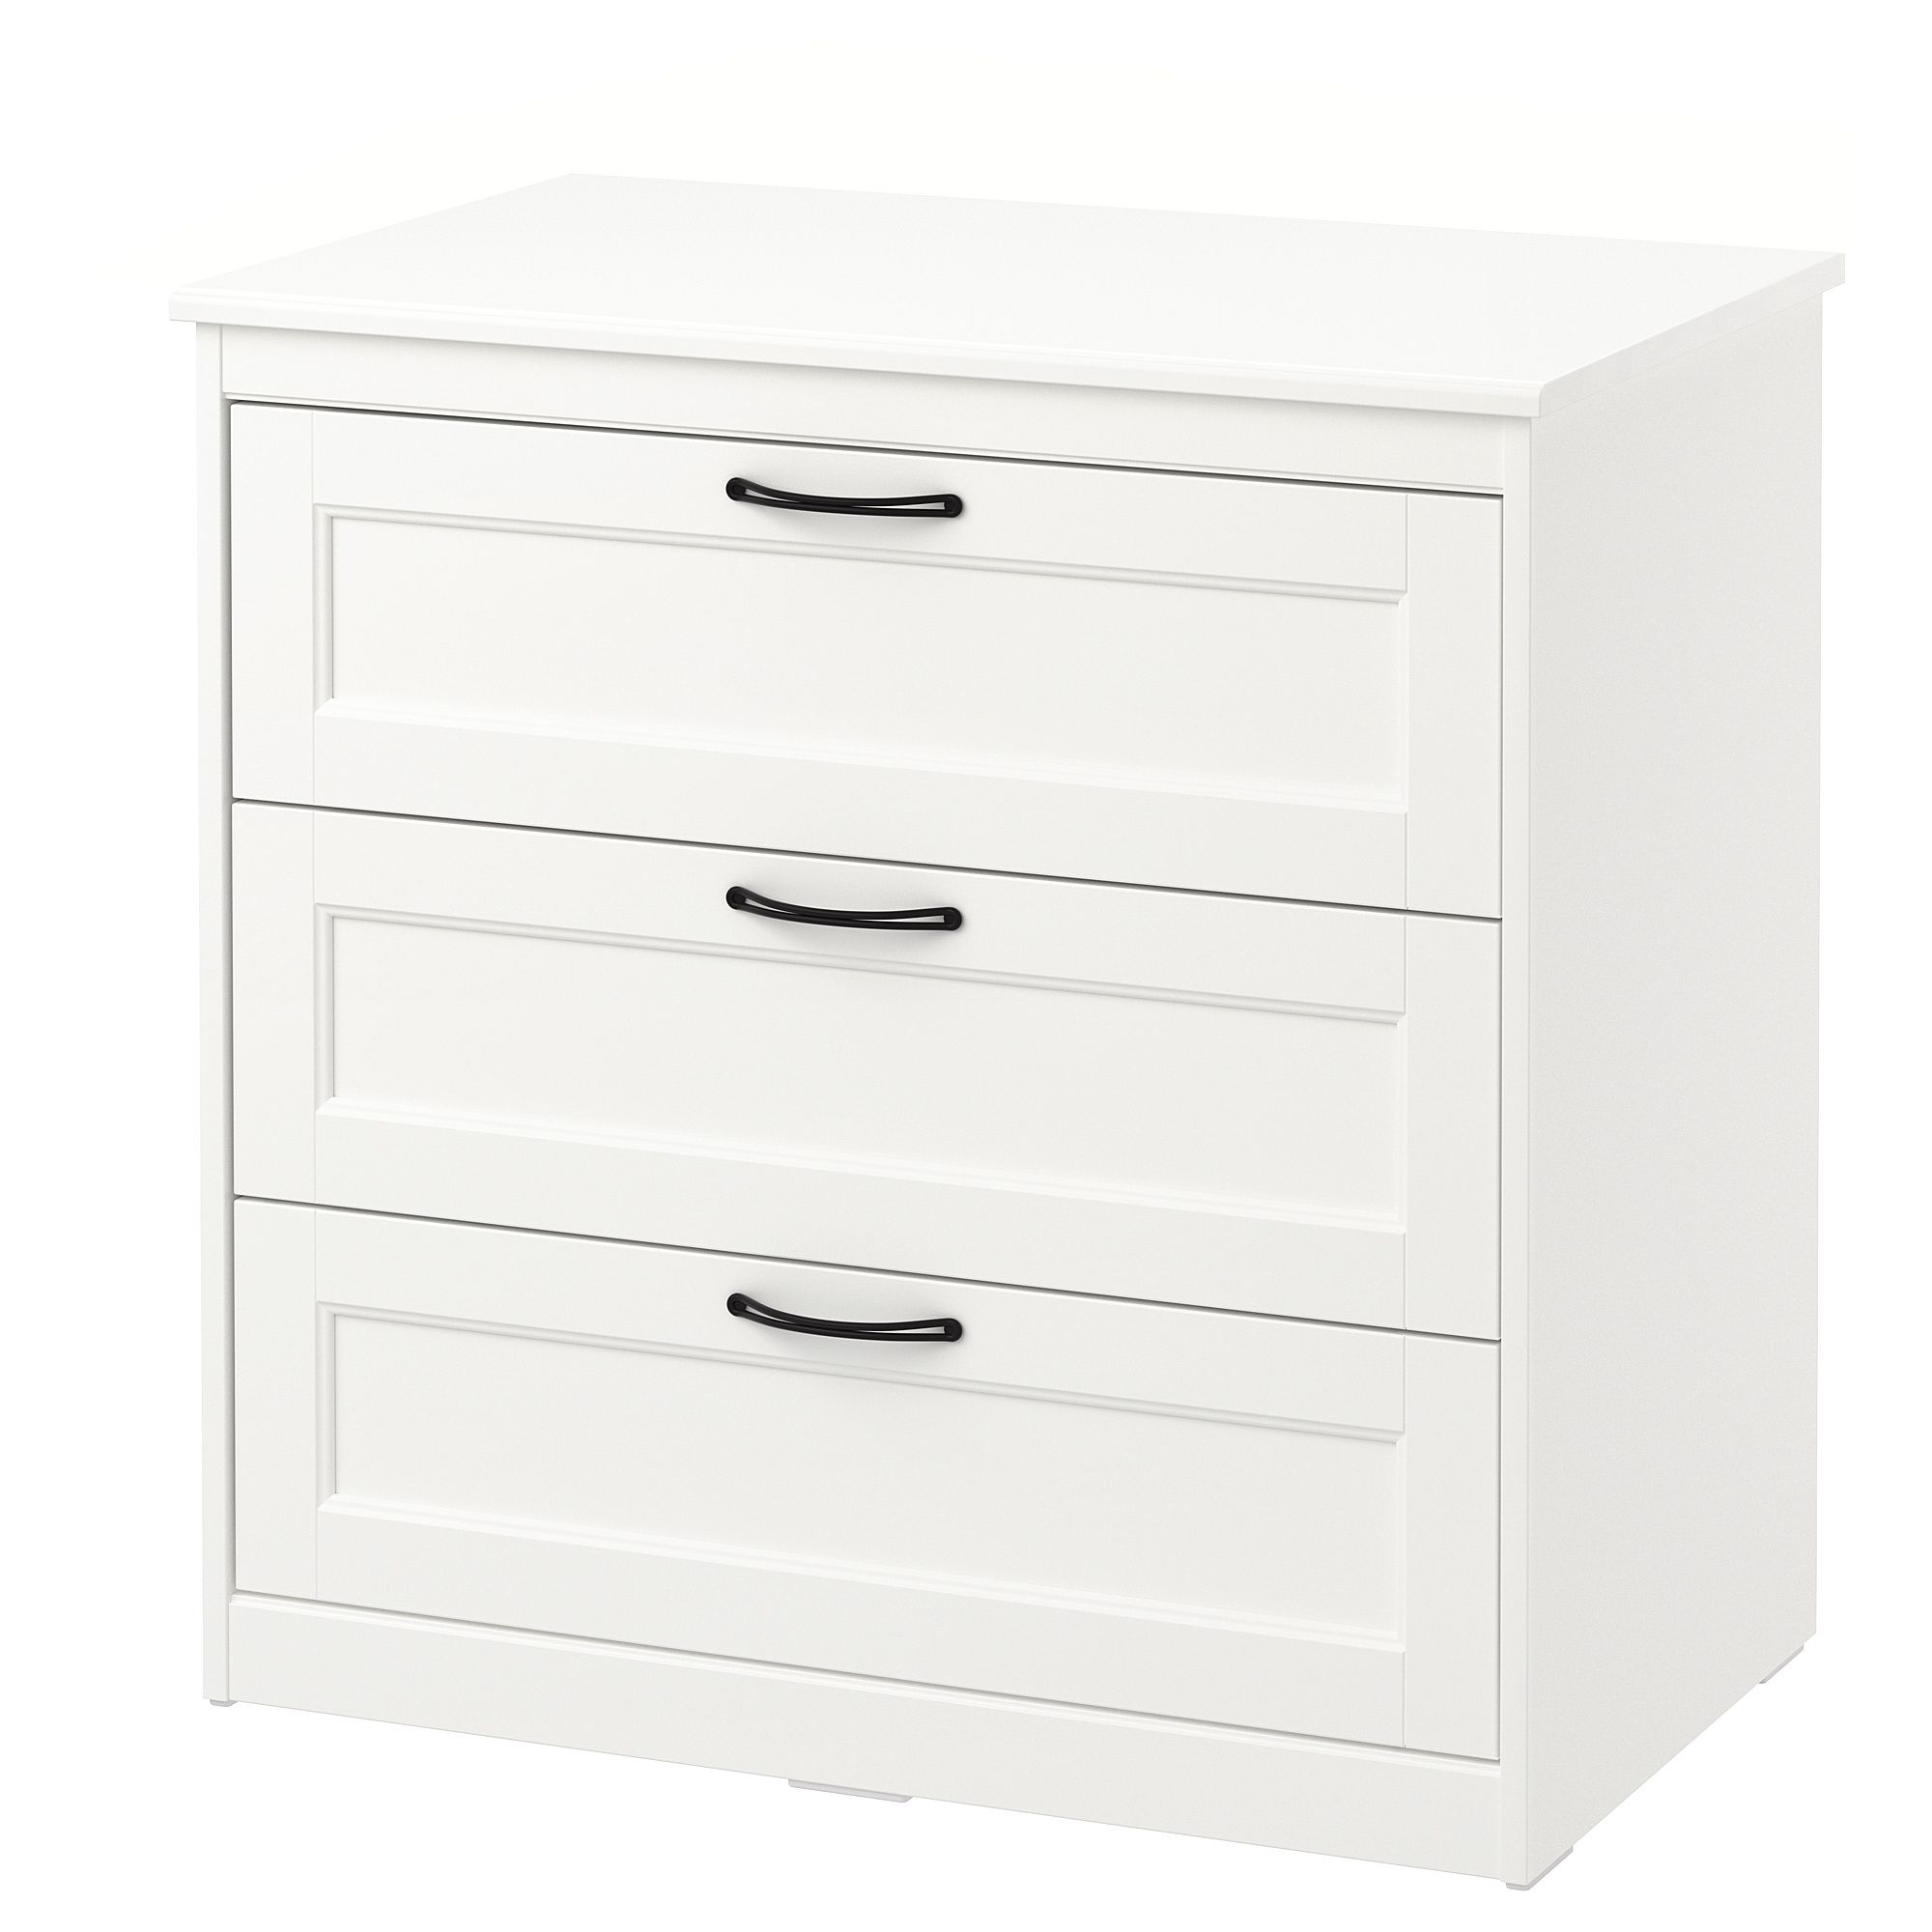 Ikea Songesand 3 Drawer Chest White